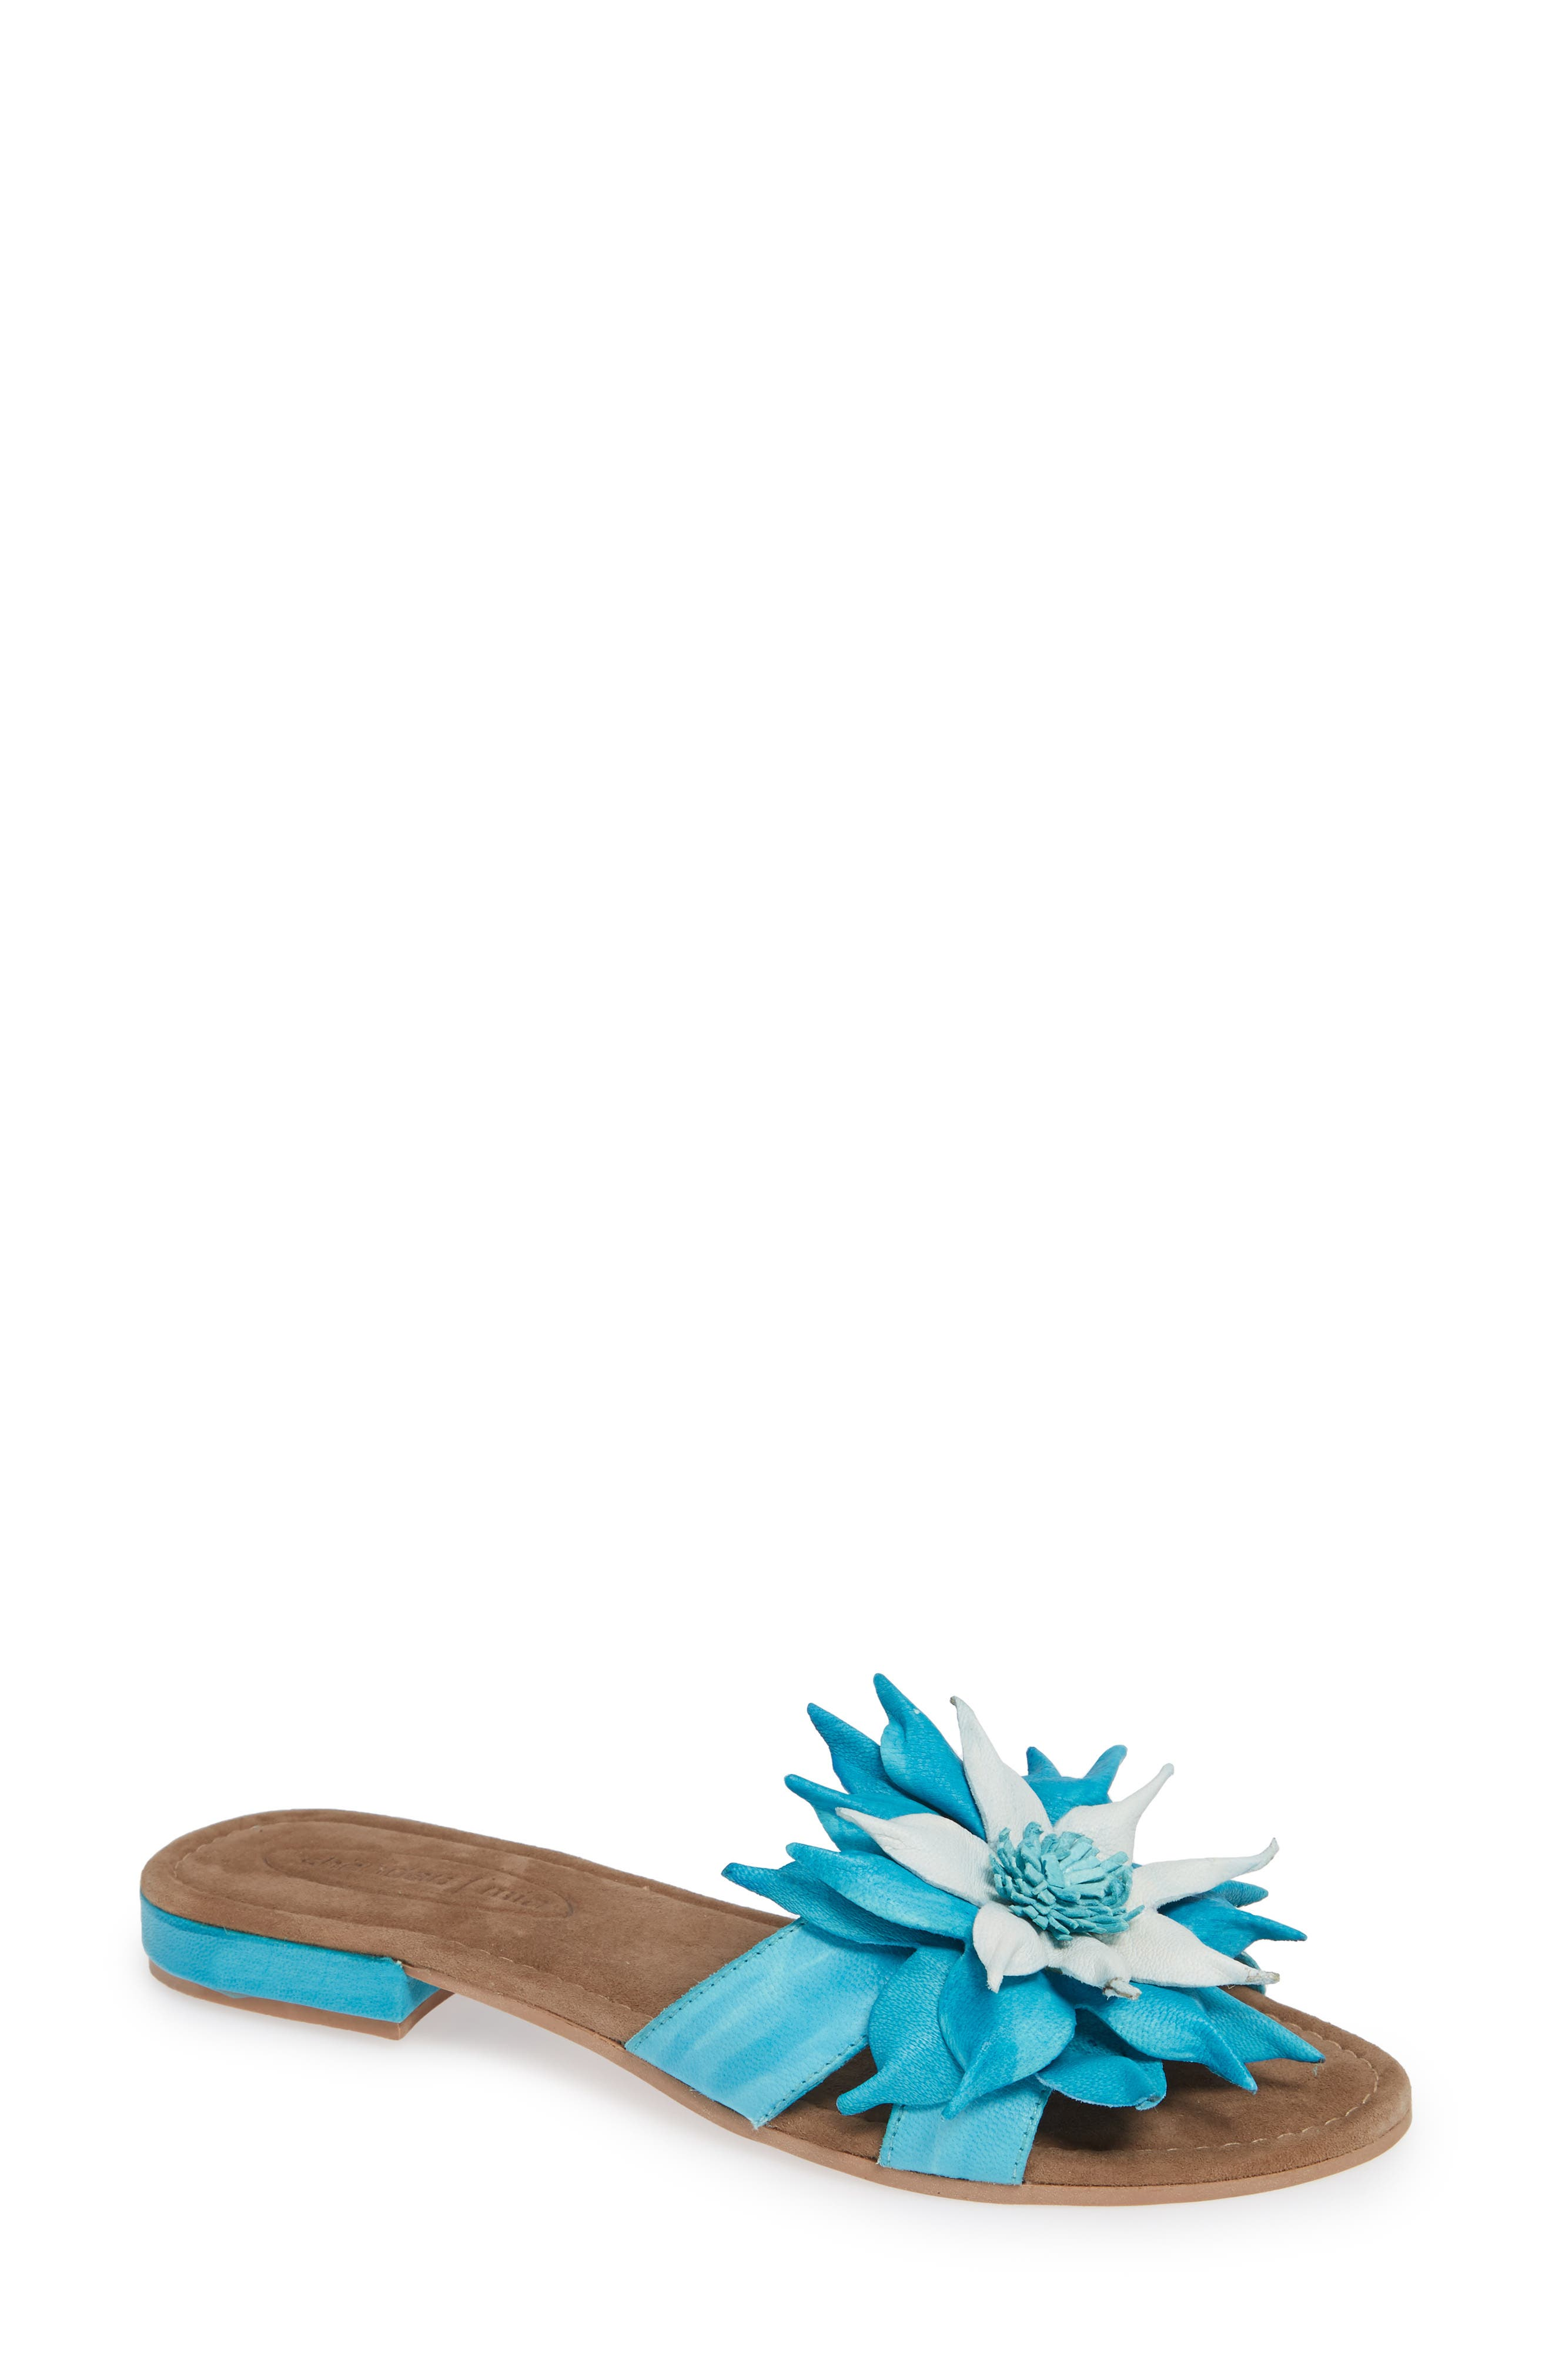 Stella Sandal,                         Main,                         color, TURQUOISE LEATHER